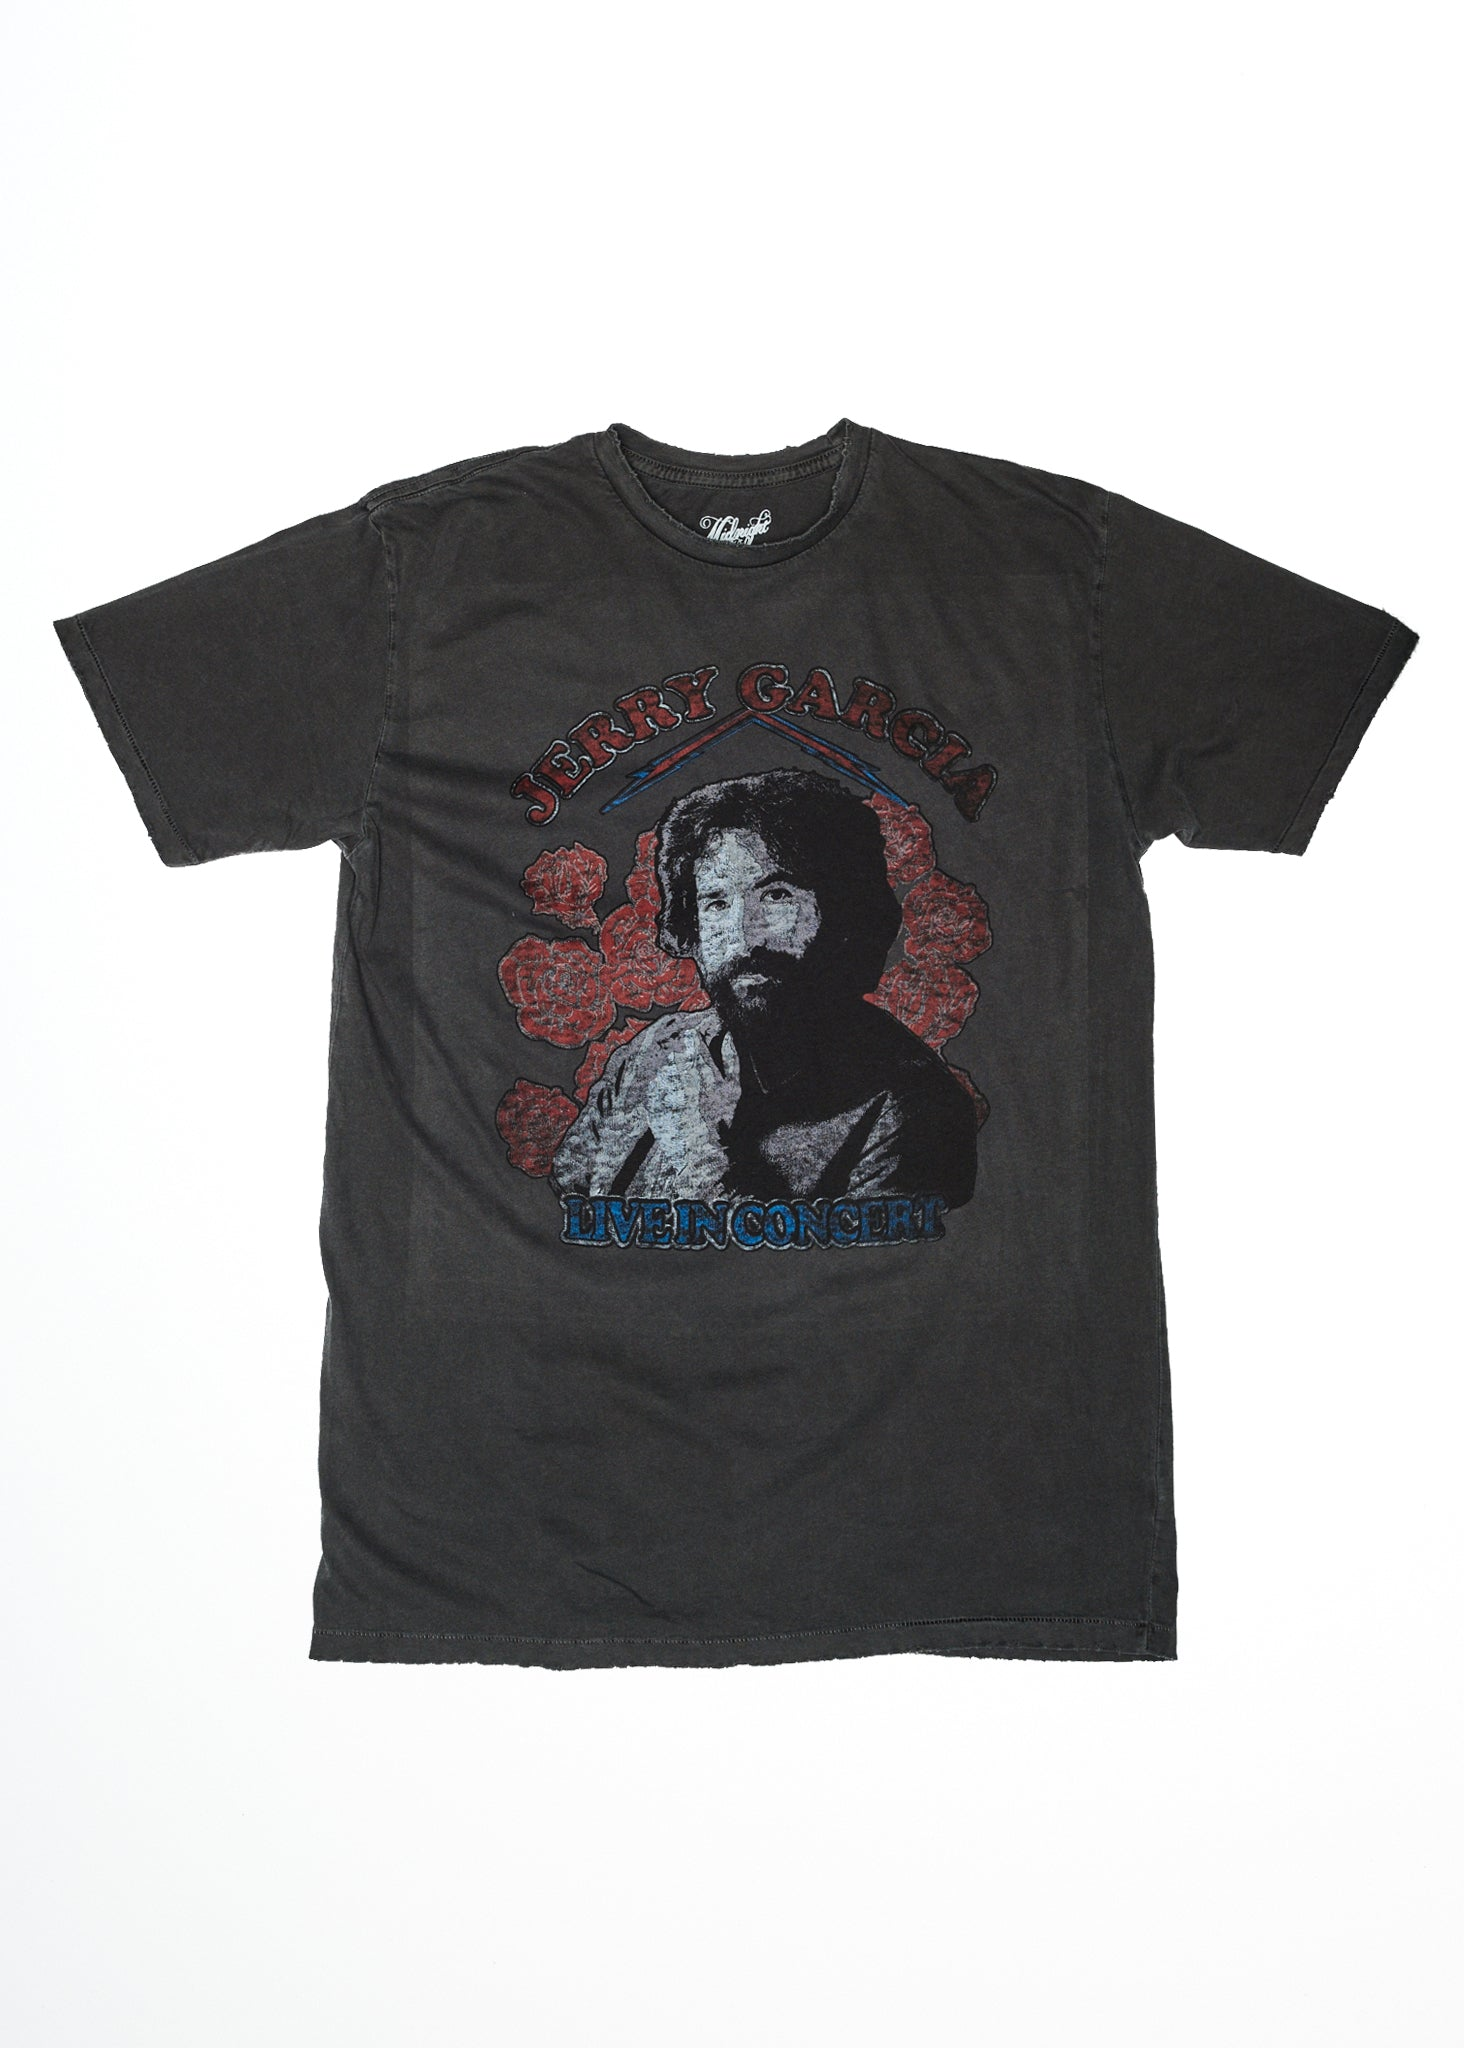 Jerry Garcia Live in Concert Men's T-Shirt - Vintage Black - Men's Tee Shirt - Midnight Rider